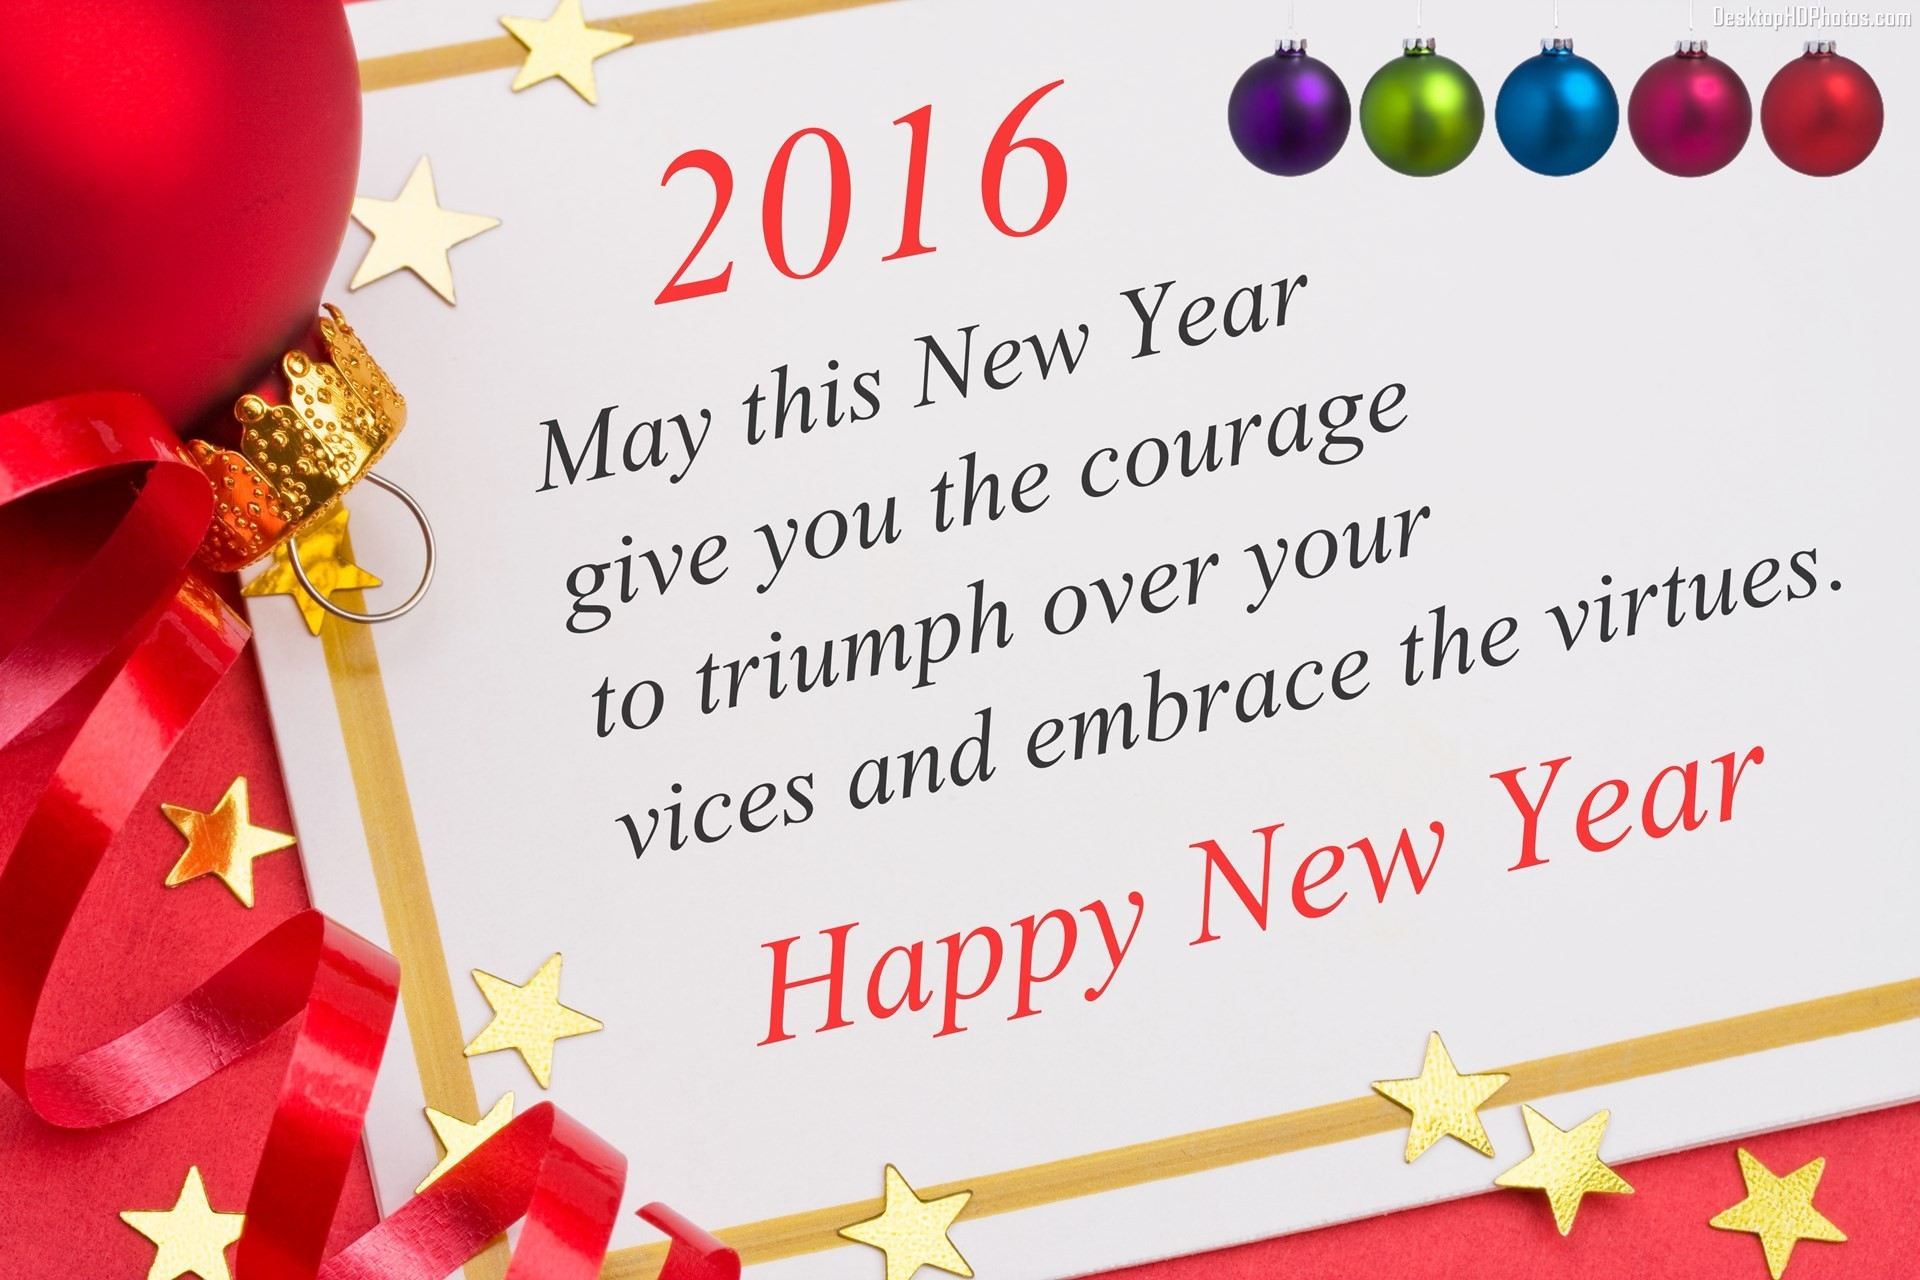 Happy-New-Year-Quotes-2016-for-Mom[1]